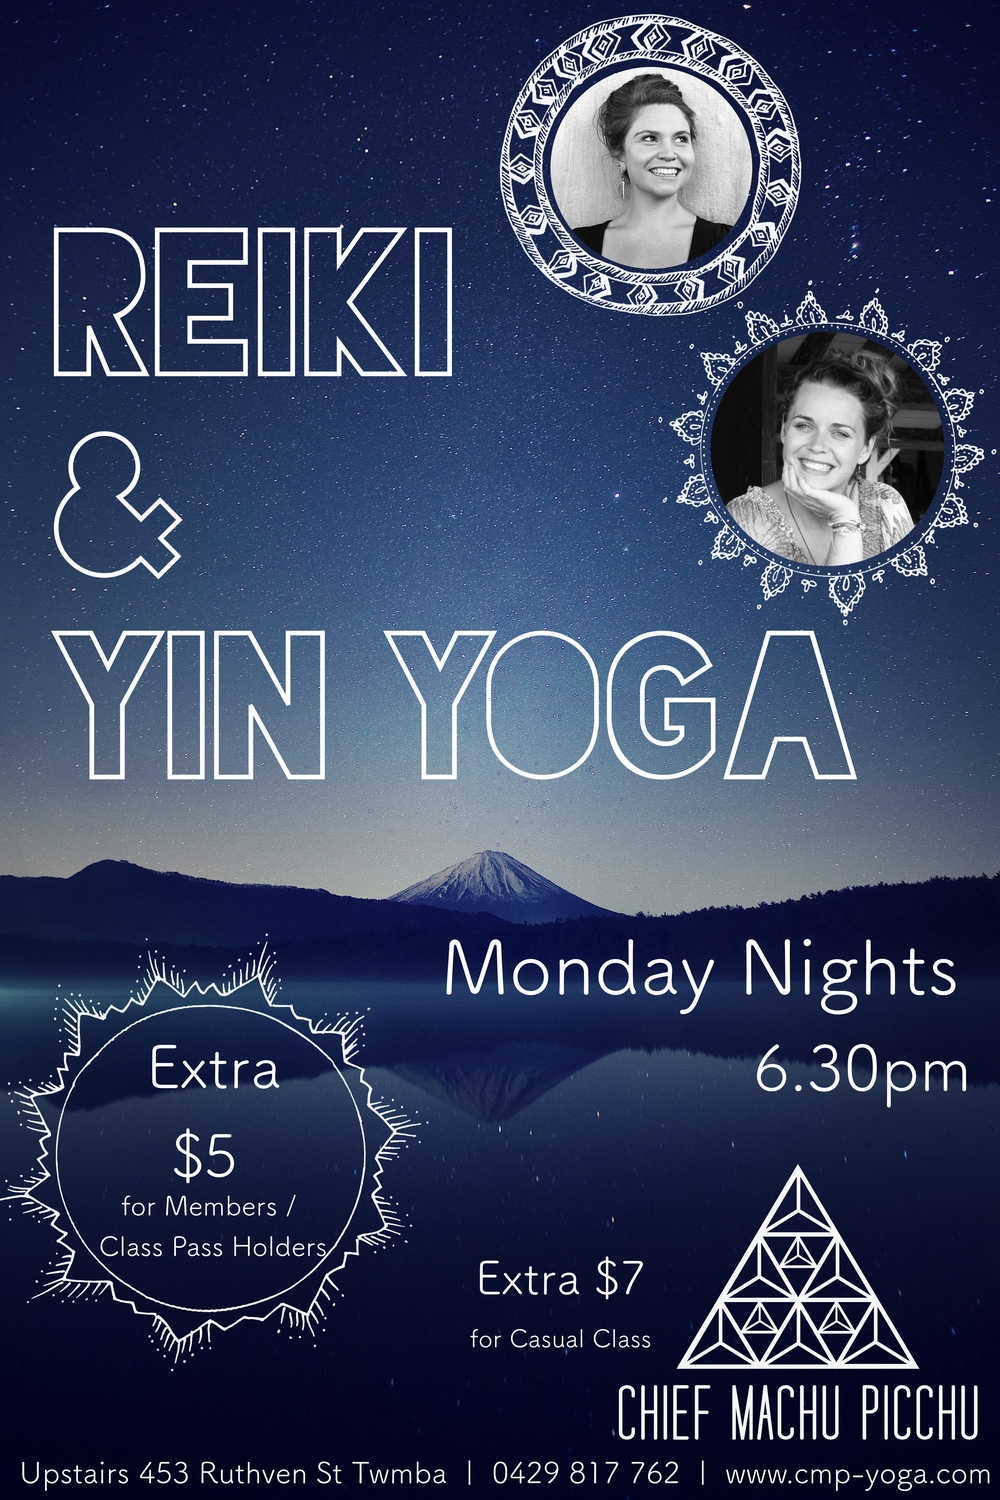 Reiki & Yin Yoga Lessons on Monday Nights at Chief Machu Picchu with Natalie & Camilla